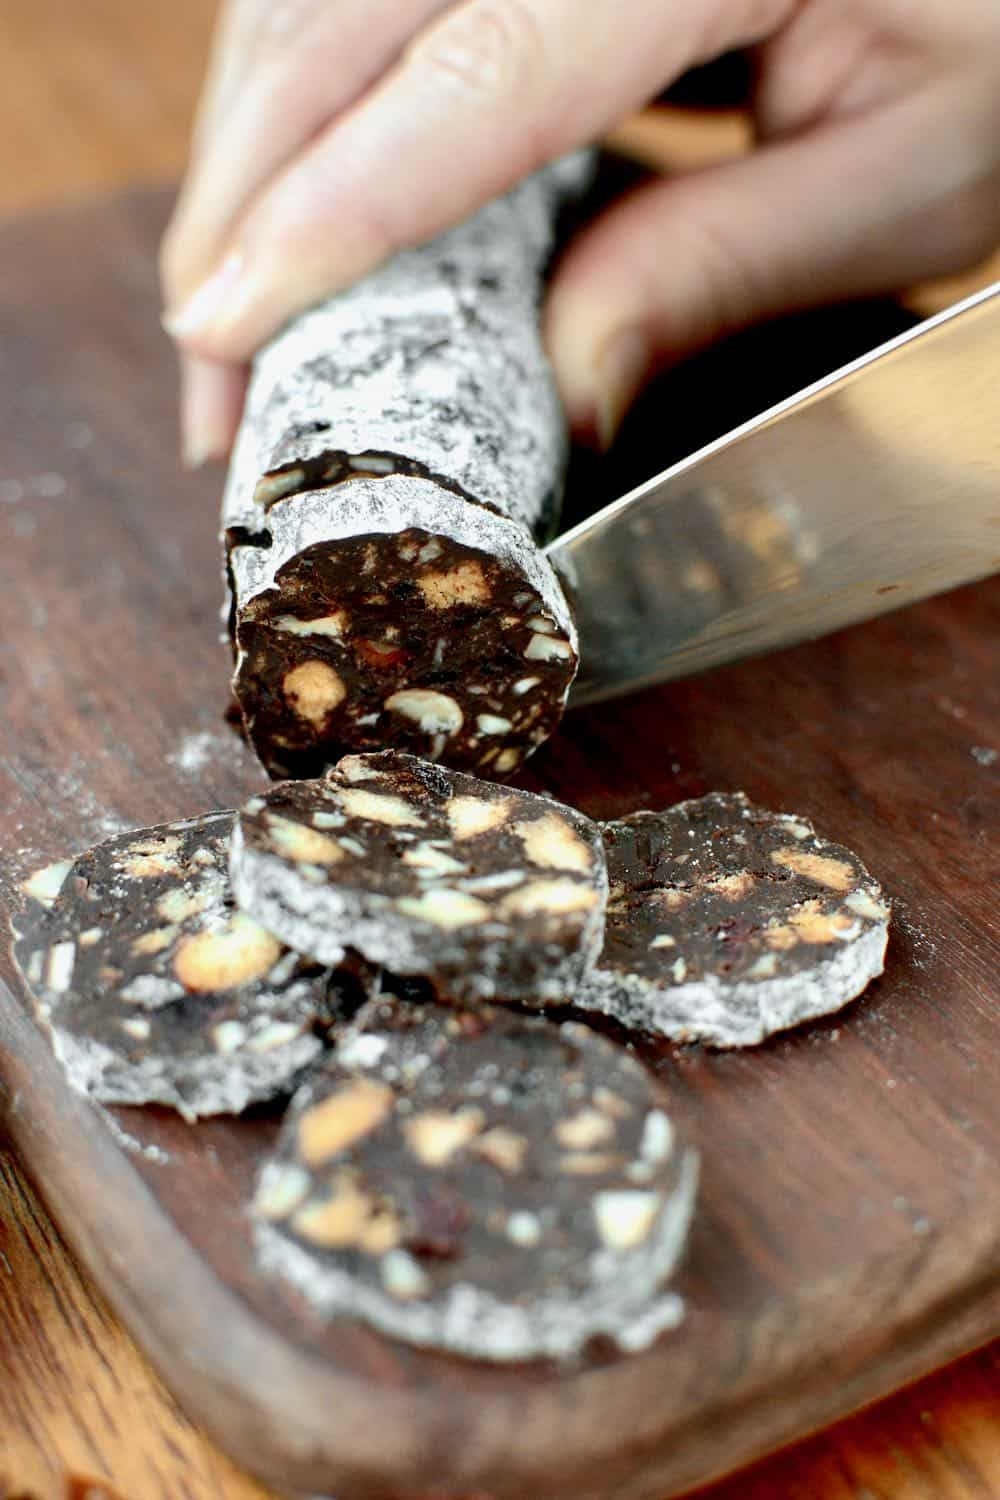 Cutting slices of chocolate salami